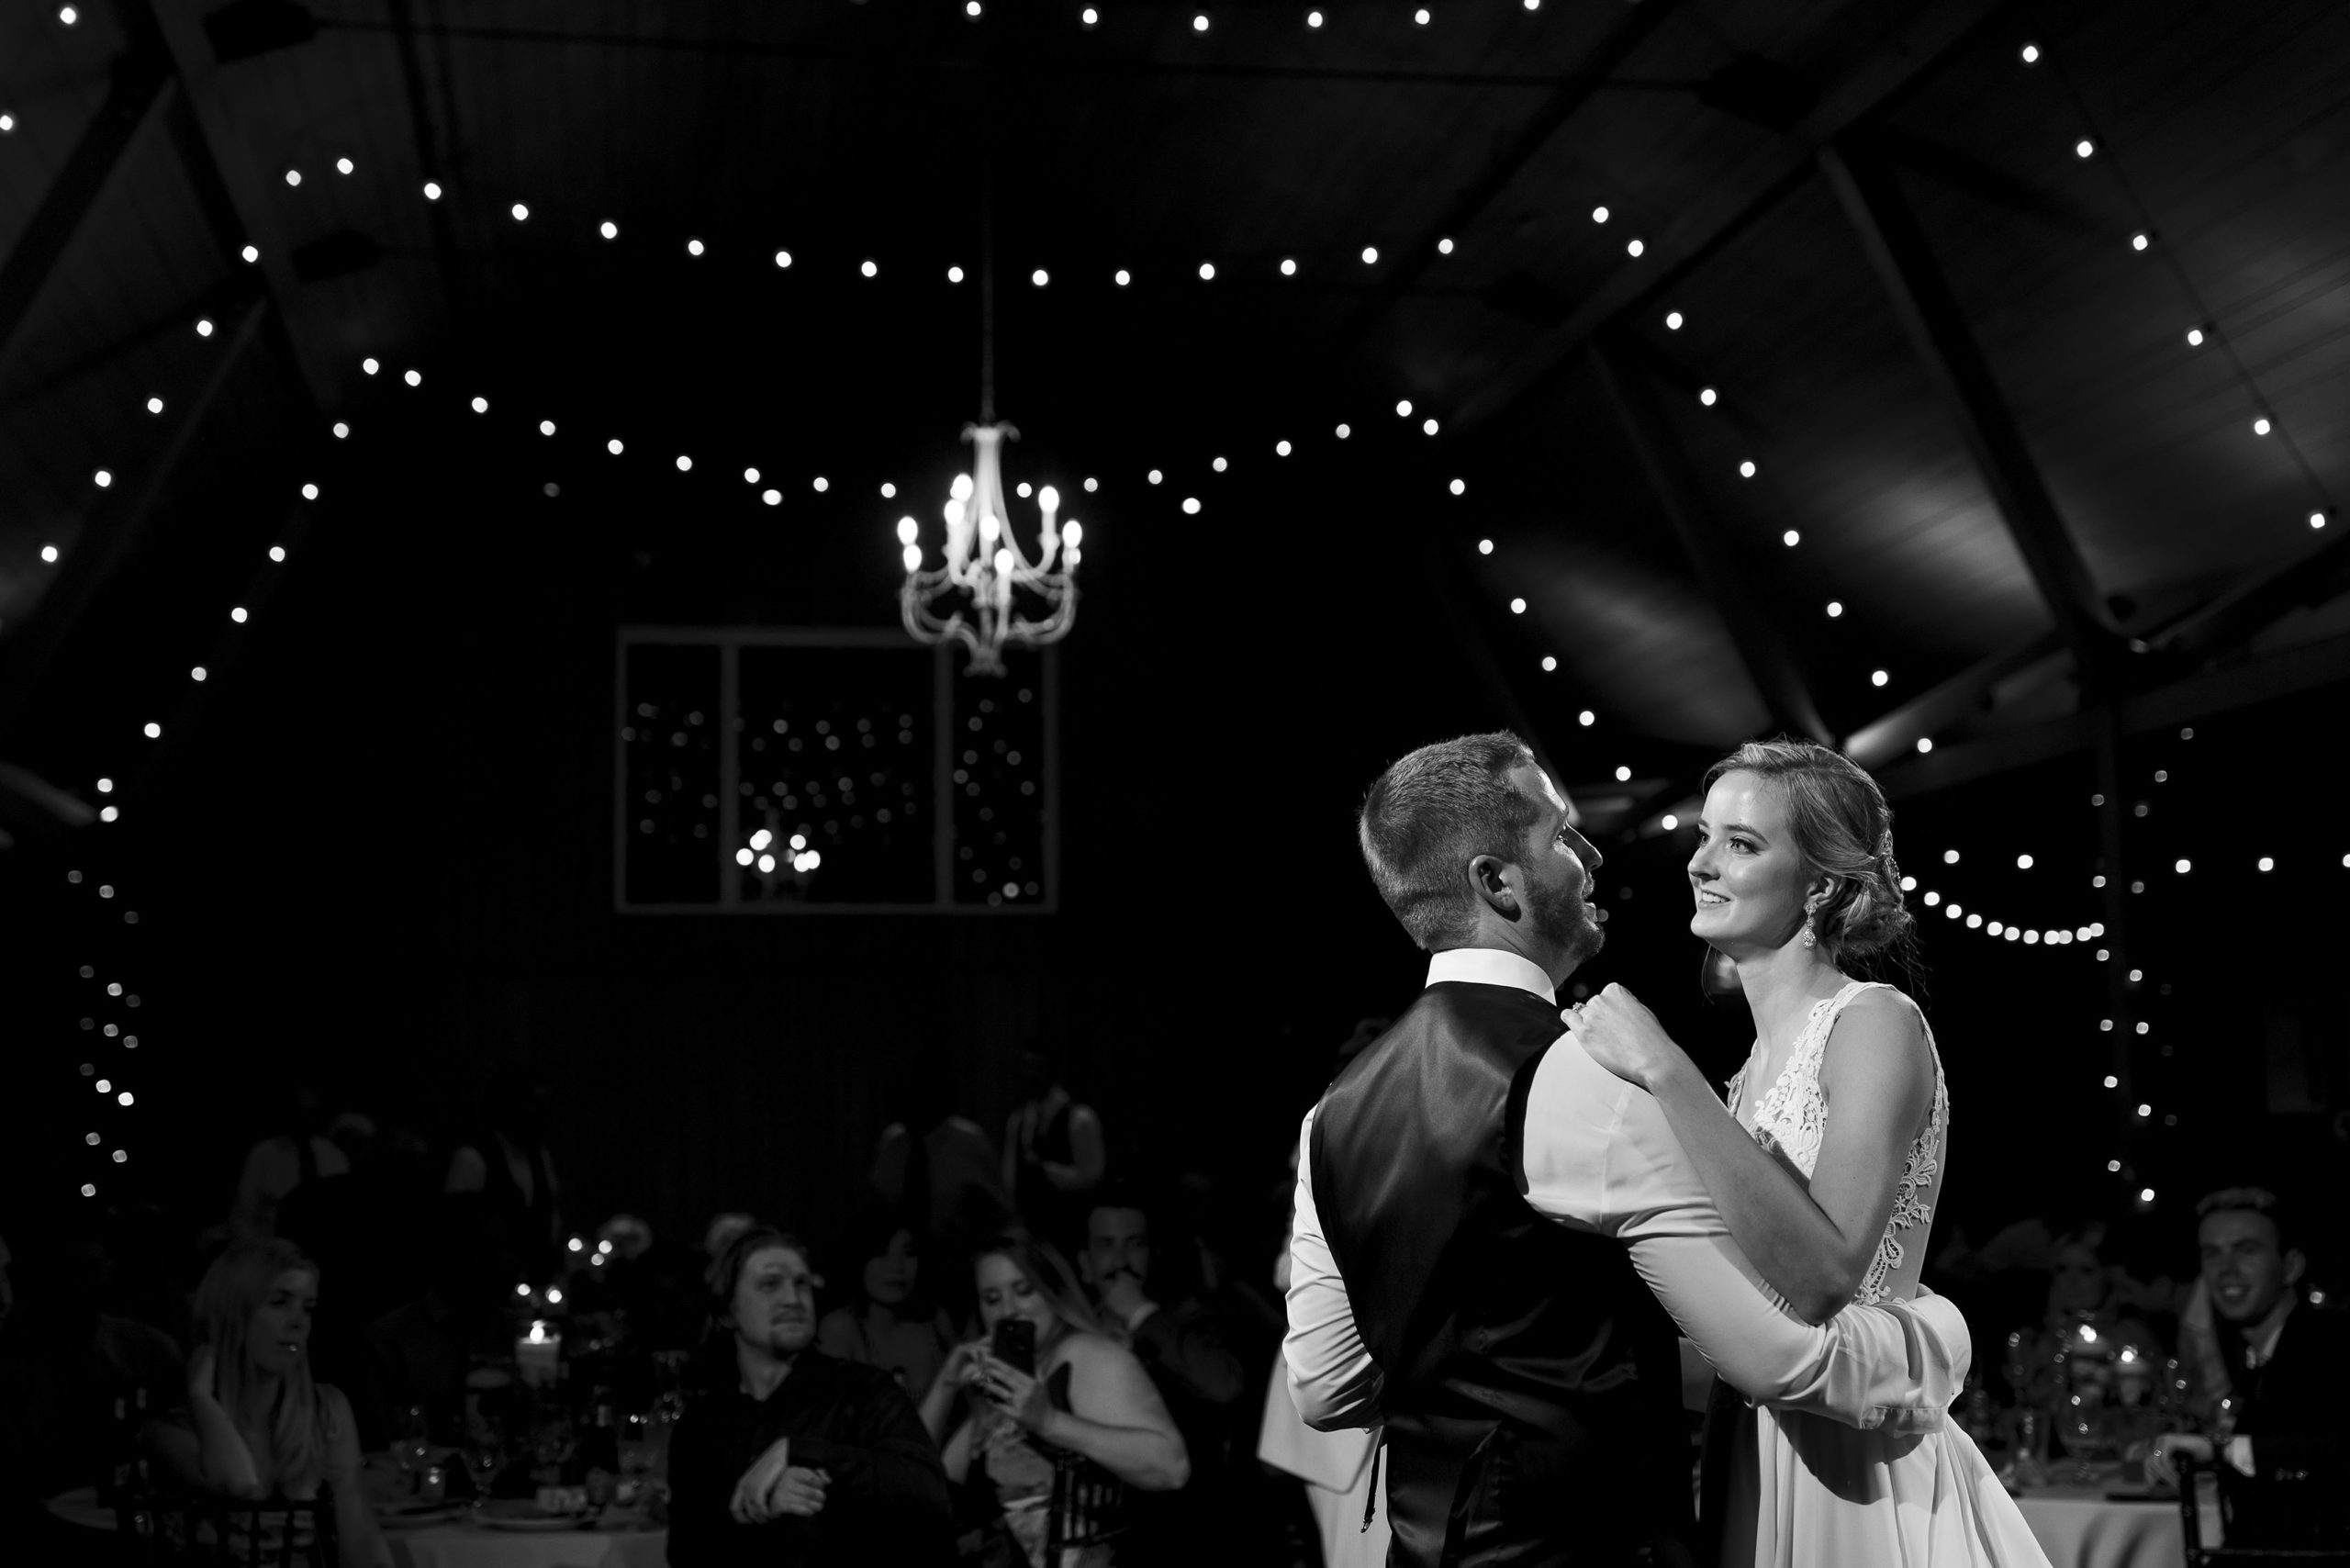 Jennifer and Stefan enjoy their first dance during the wedding reception at the barn at raccoon creek